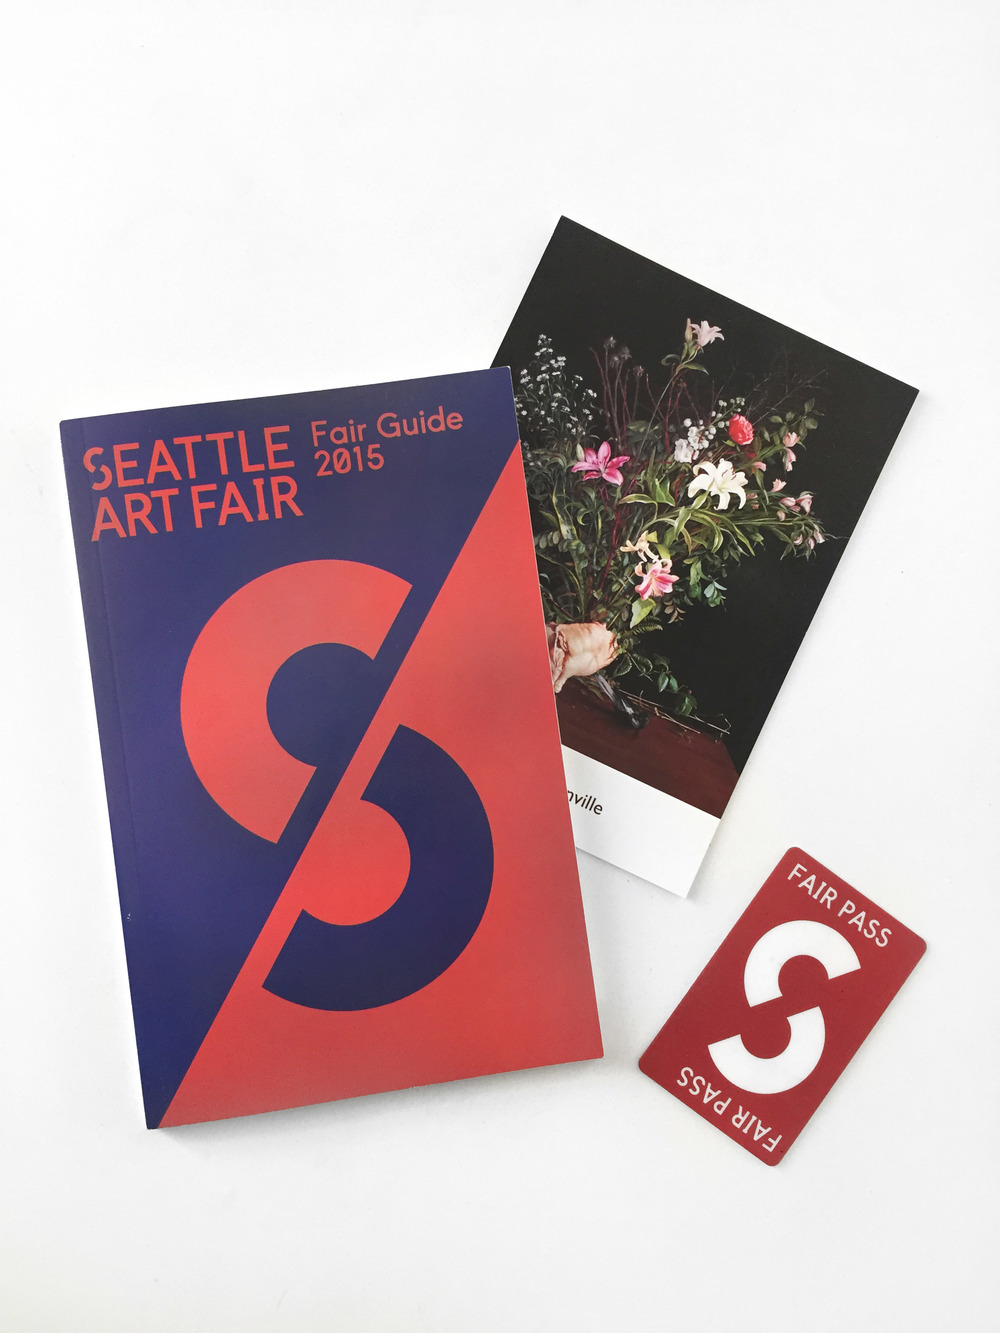 SAF exhibition guide book, gallery postcard, and fair pass. Photo by me.